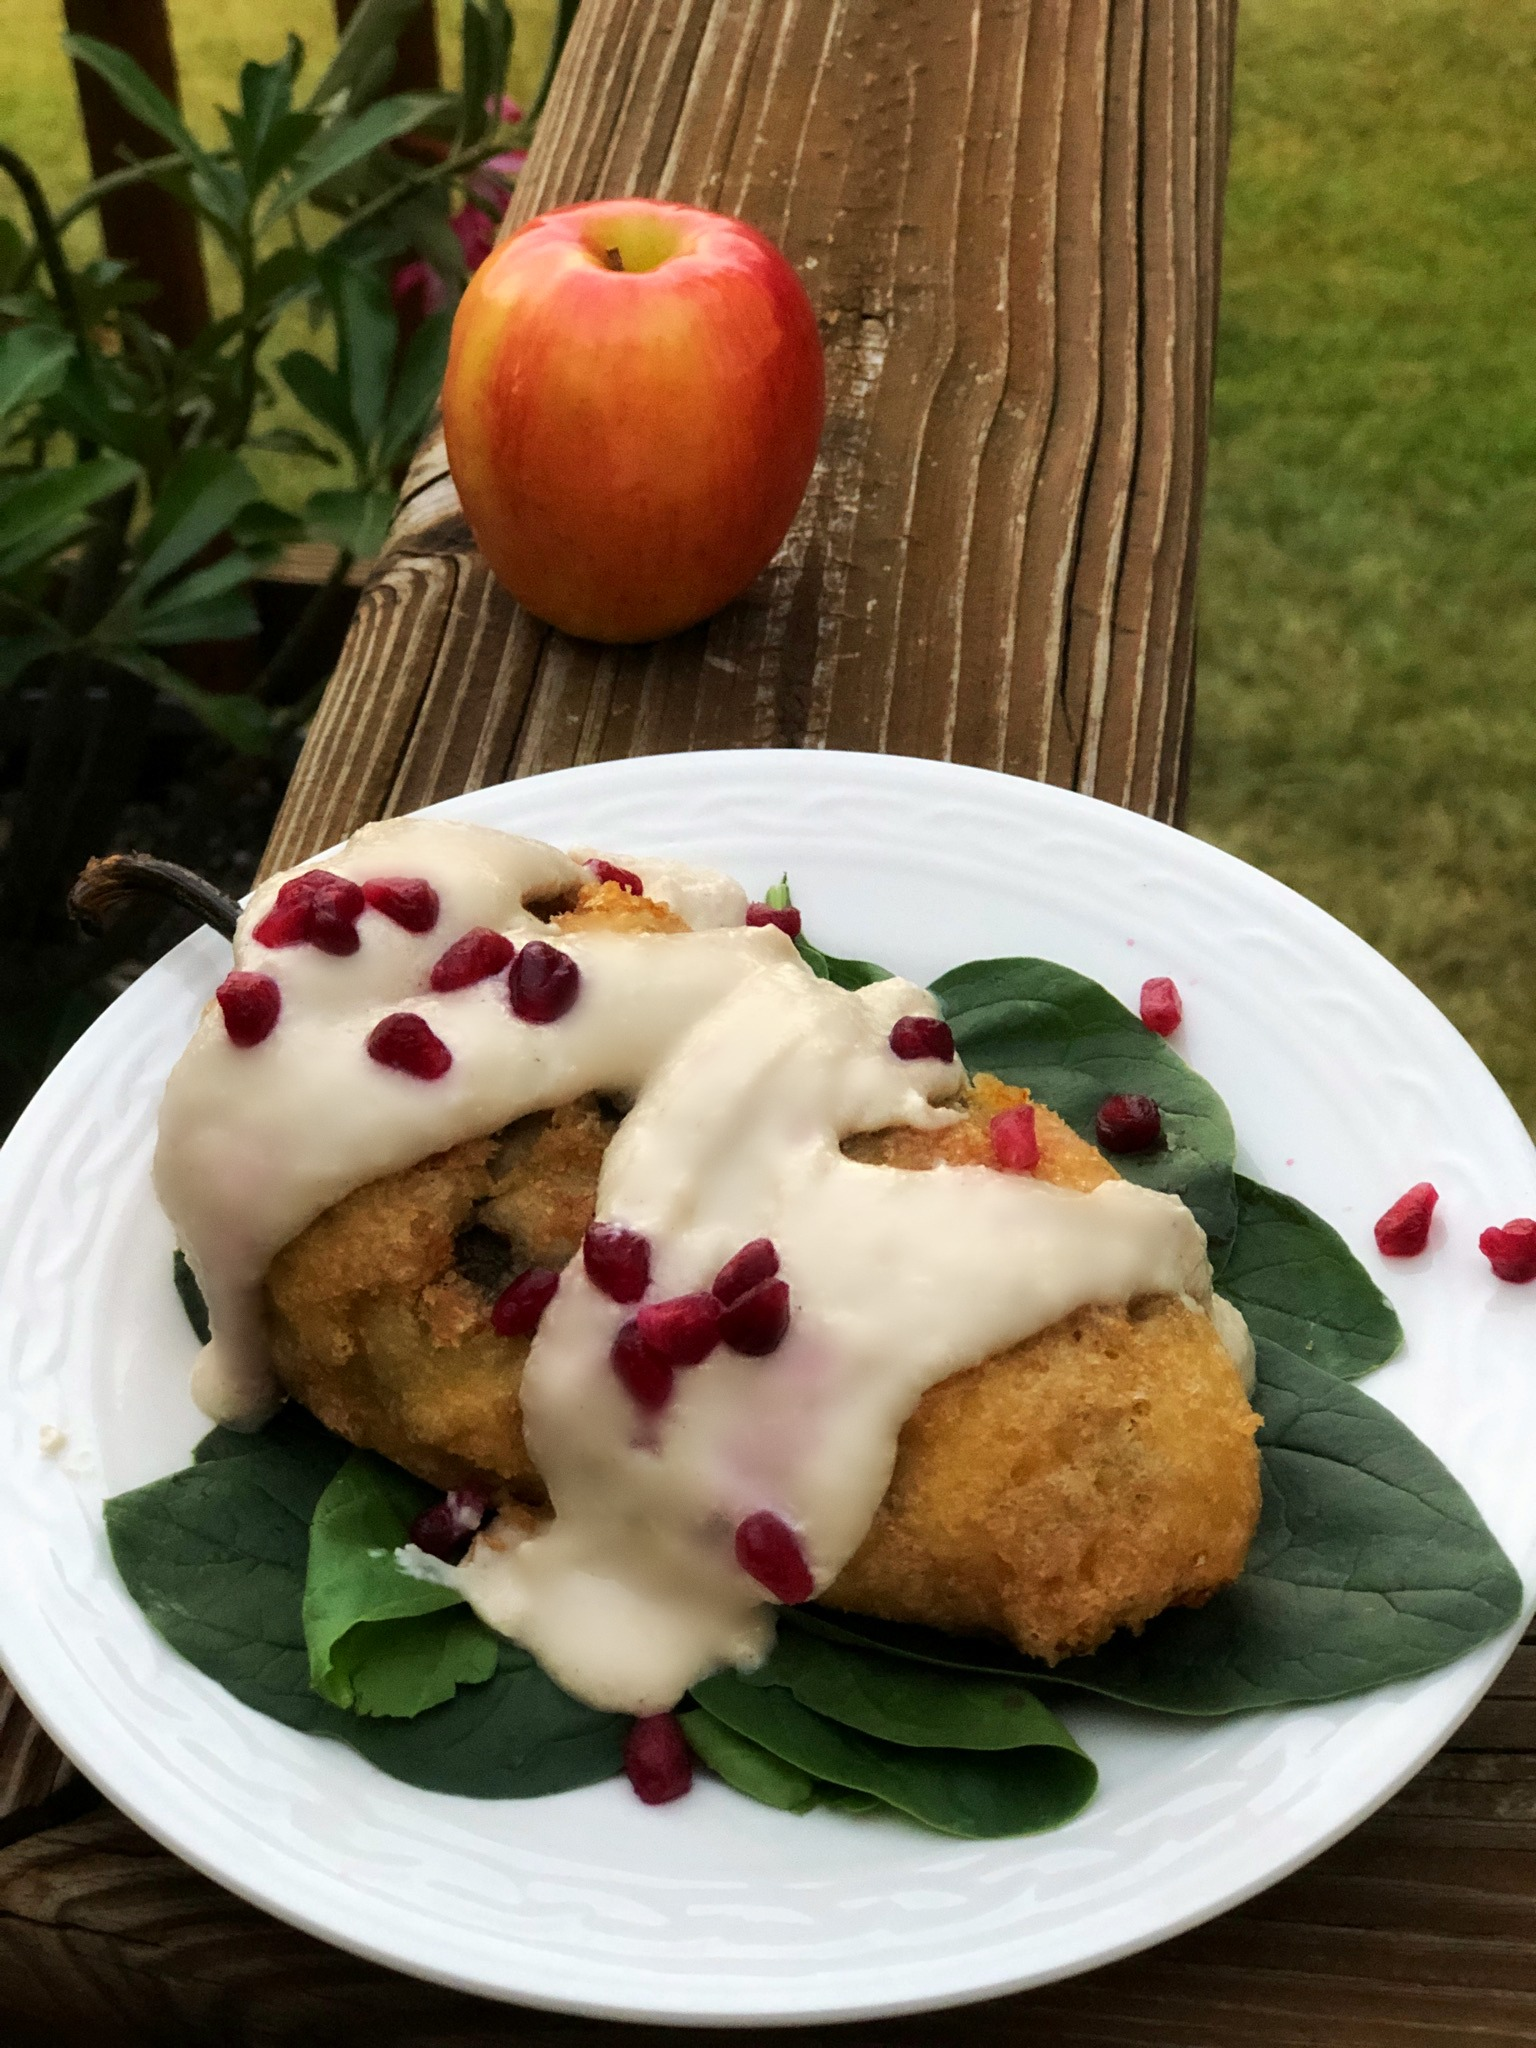 Squash Blossom Chile Relleno with Walnut Cream Sauce